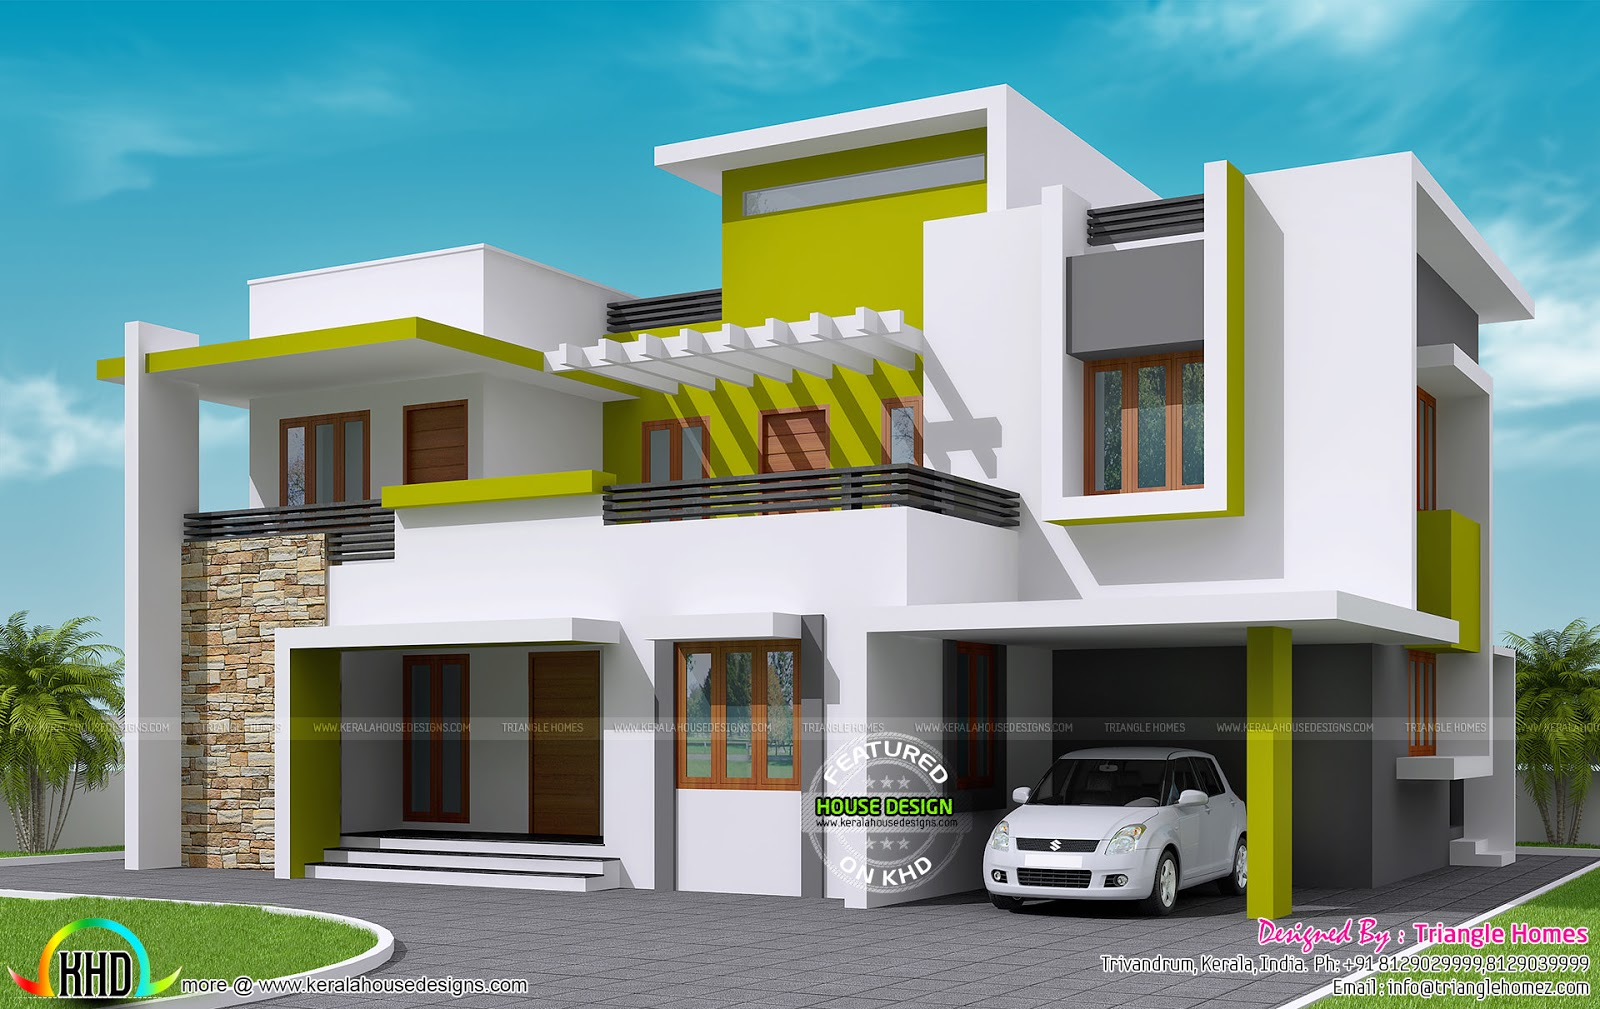 232 Sq M Contemporary House Kerala Home Design And Floor